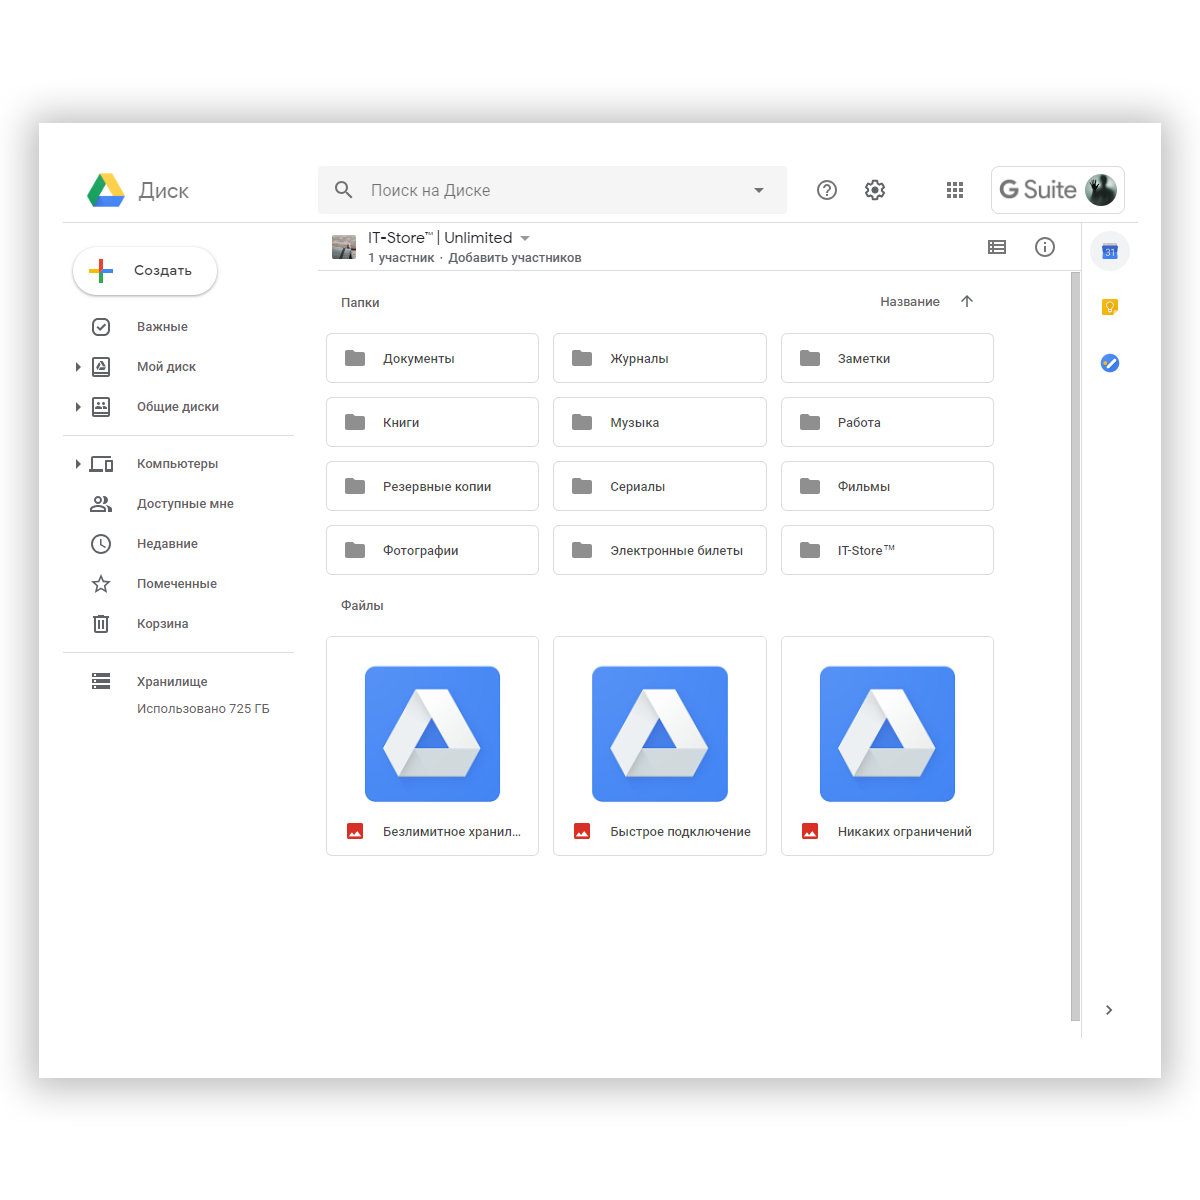 ⭕ UNLIMITED GOOGLE DRIVE YOUR ACCOUNT (X2) I I BONUSES